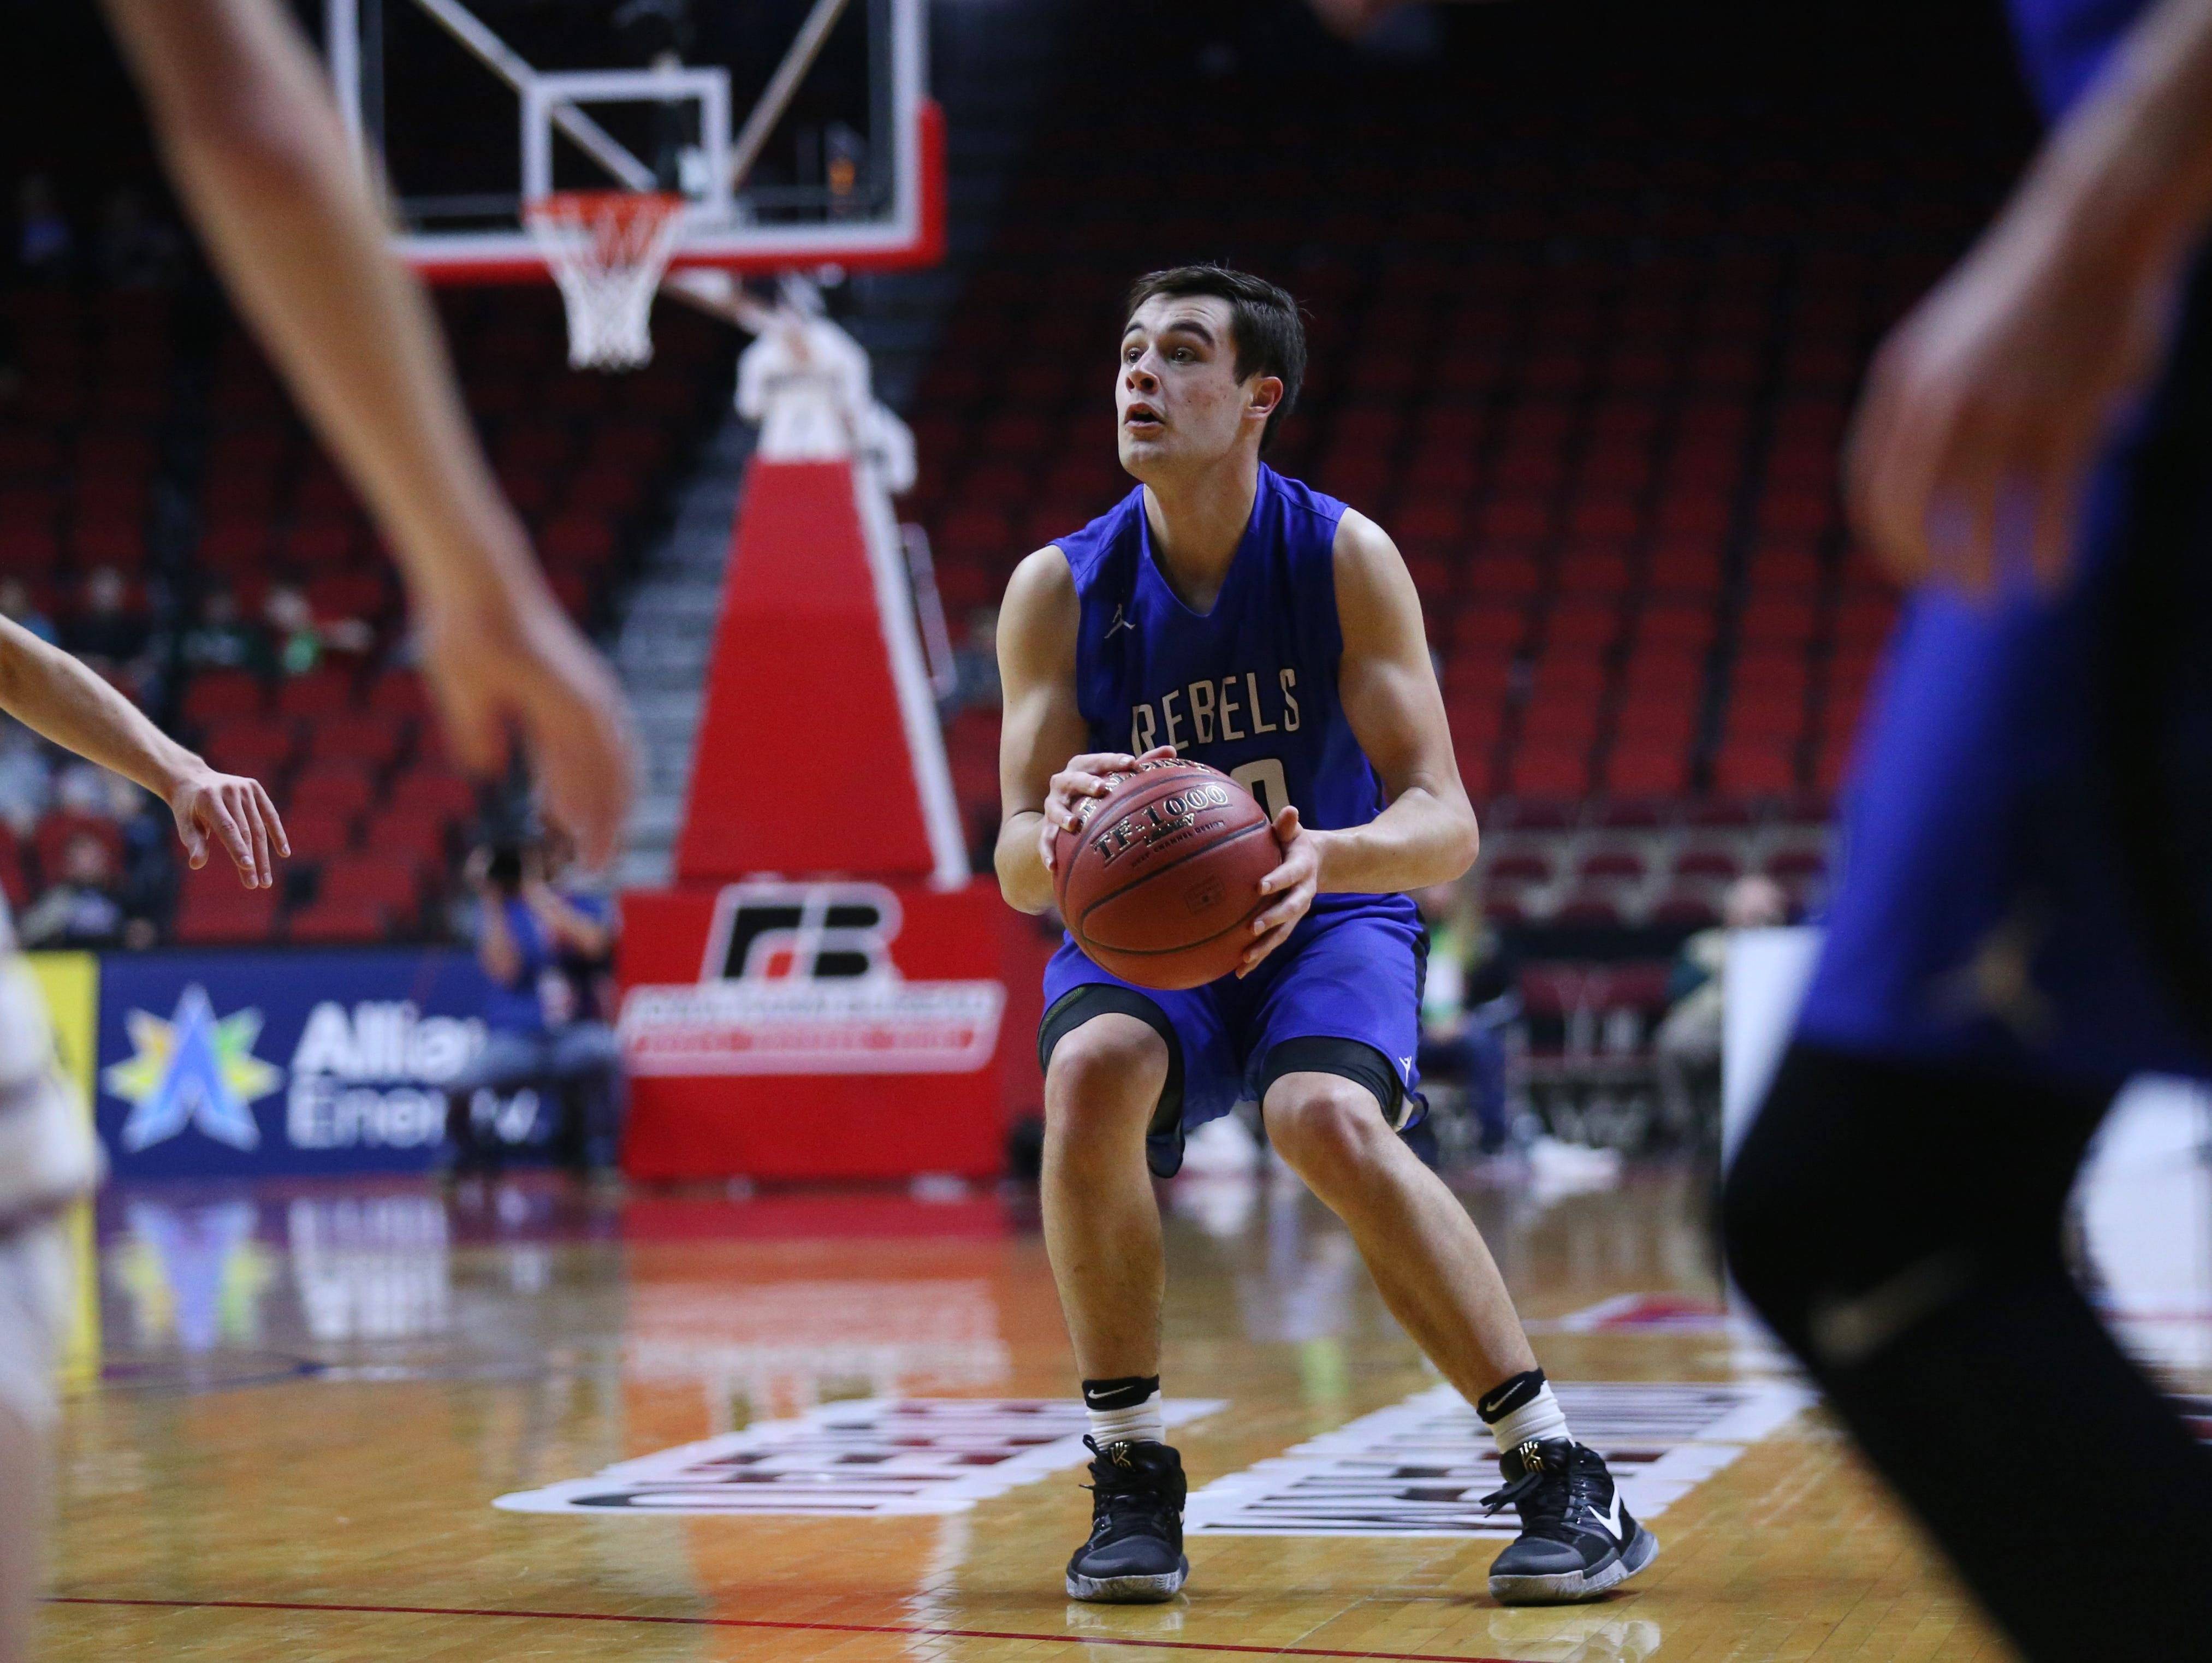 Gladbrook-Reinbeck's Joe Smoldt looks to shoot the ball during the state boys' basketball 1A semifinal between North Linn and Gladbrook-Reinbeck on Thursday, March 9, 2017, in Wells Fargo Arena. Gladbrook-Reinbeck won the game, 58-53.